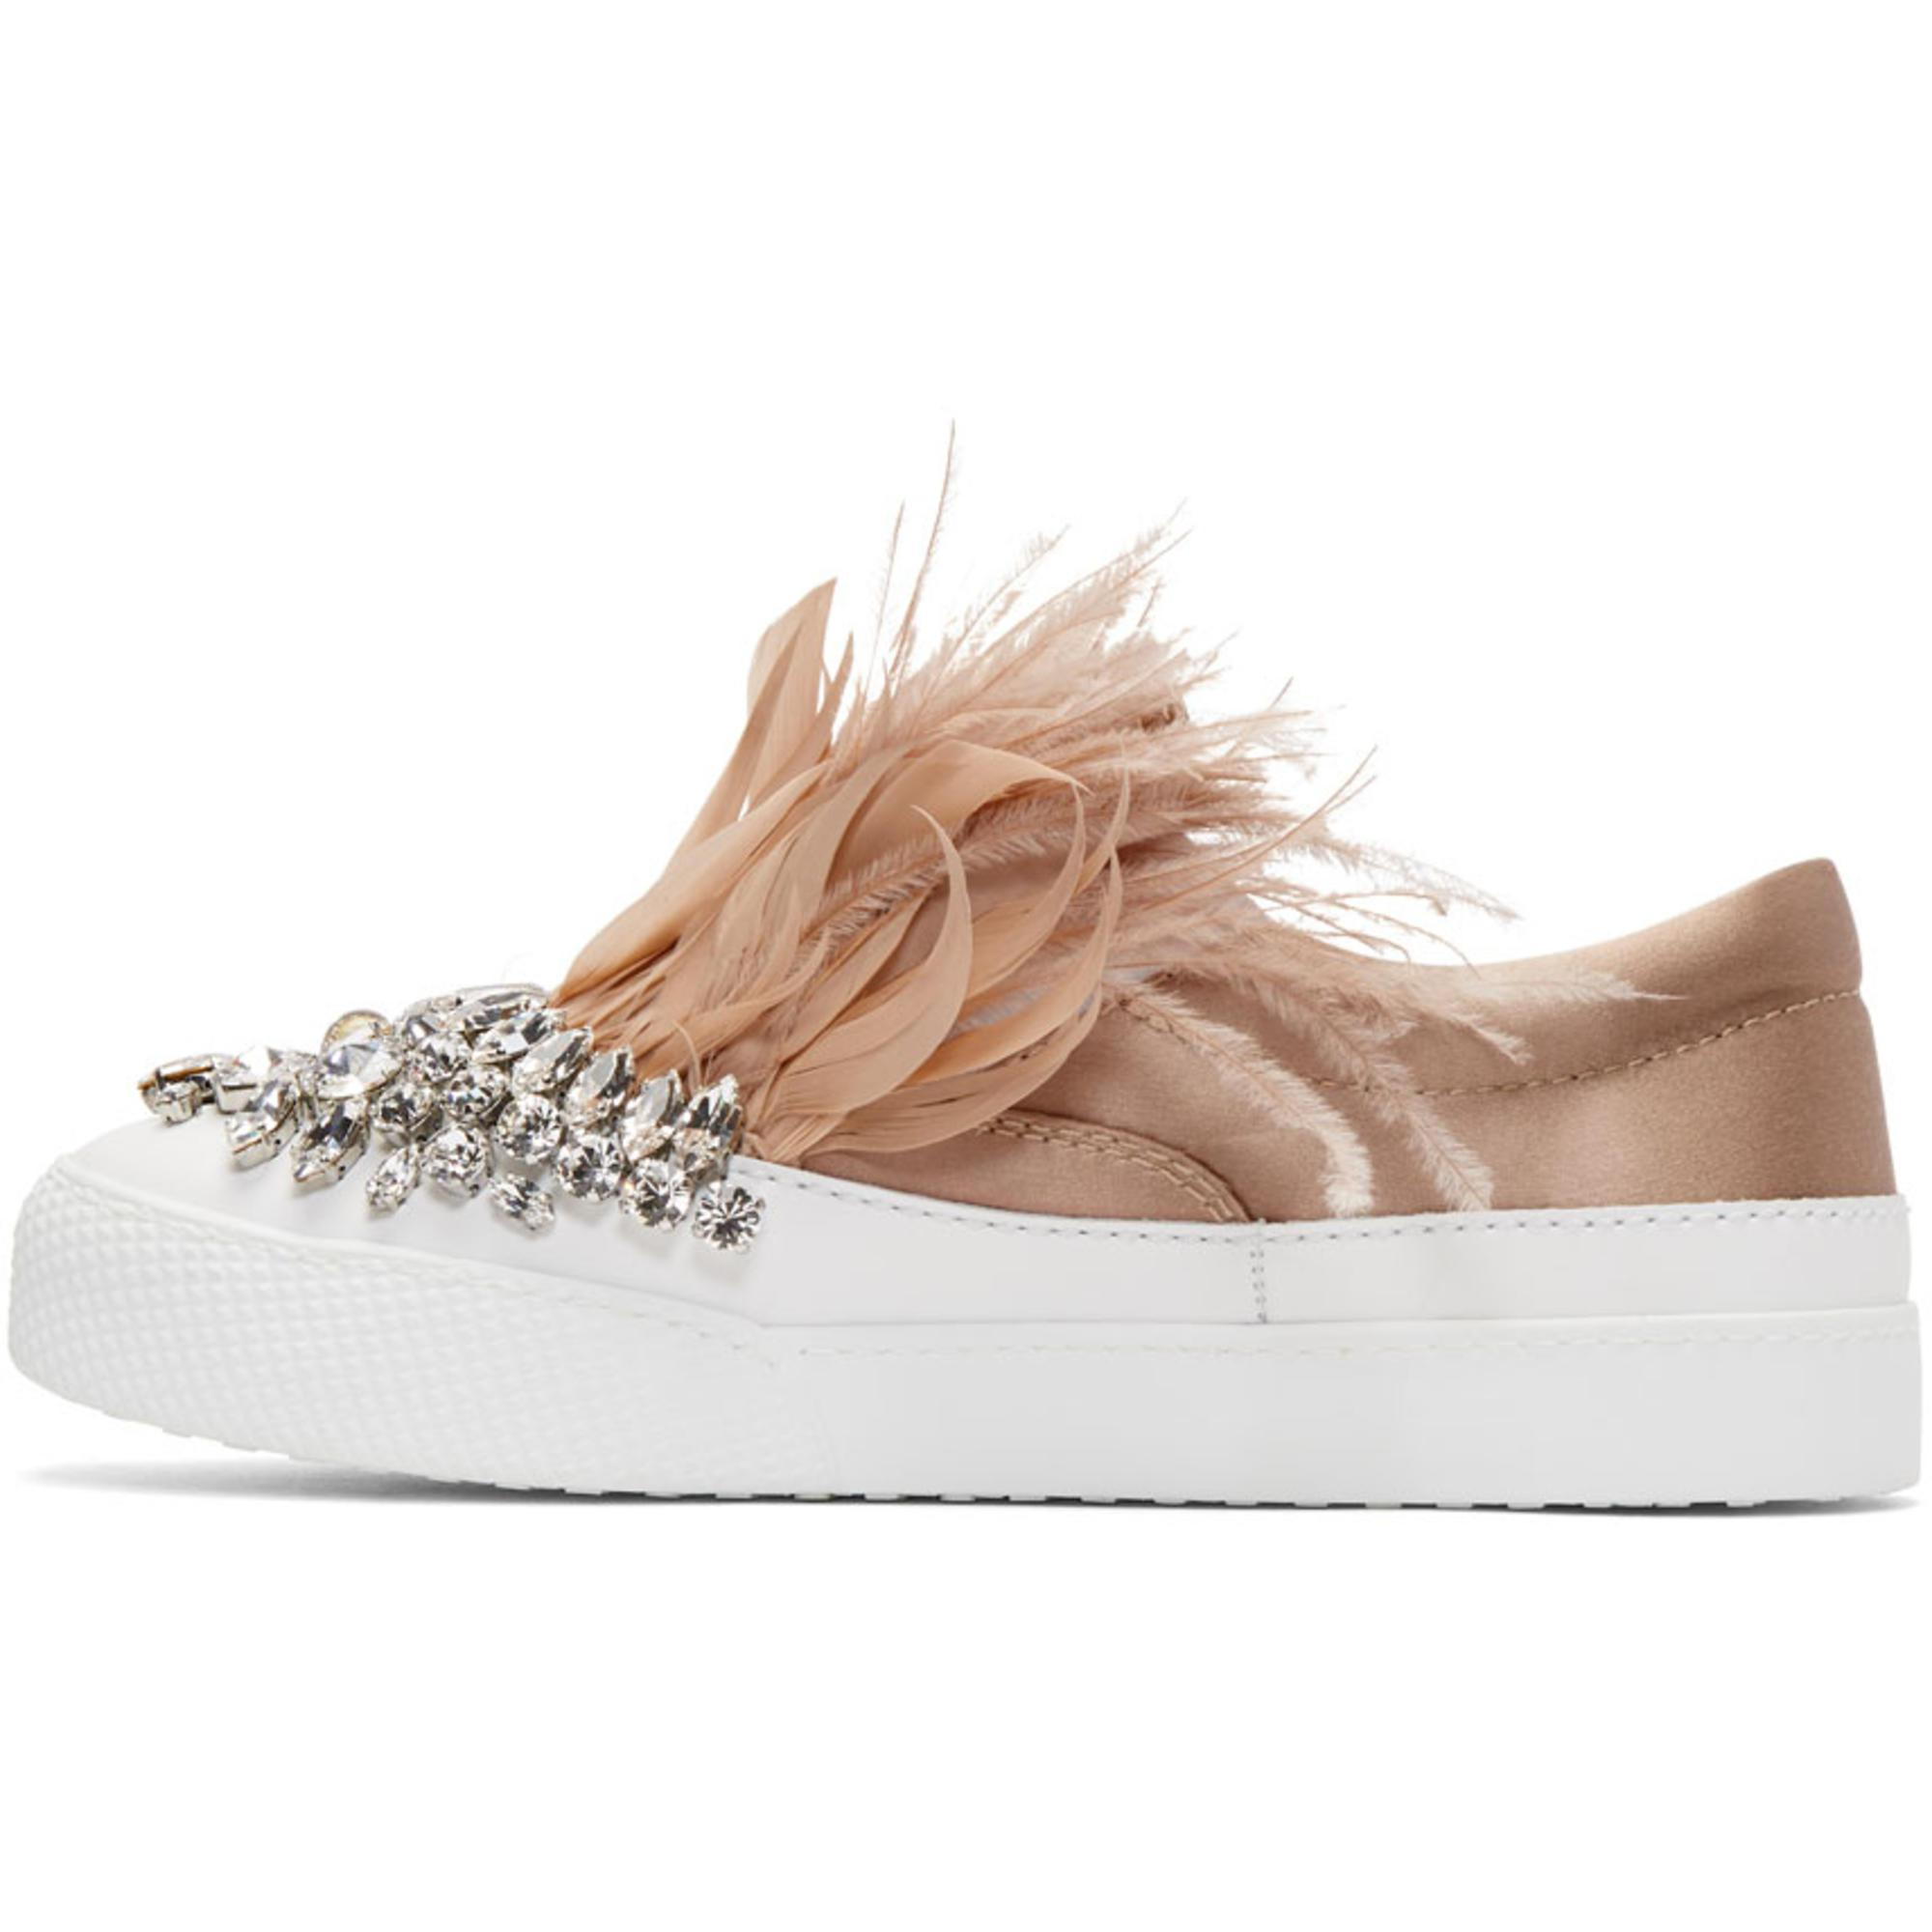 adidas Originals White & Pink Feather Crystal Slip-On Sneakers aqyy5D7Jot